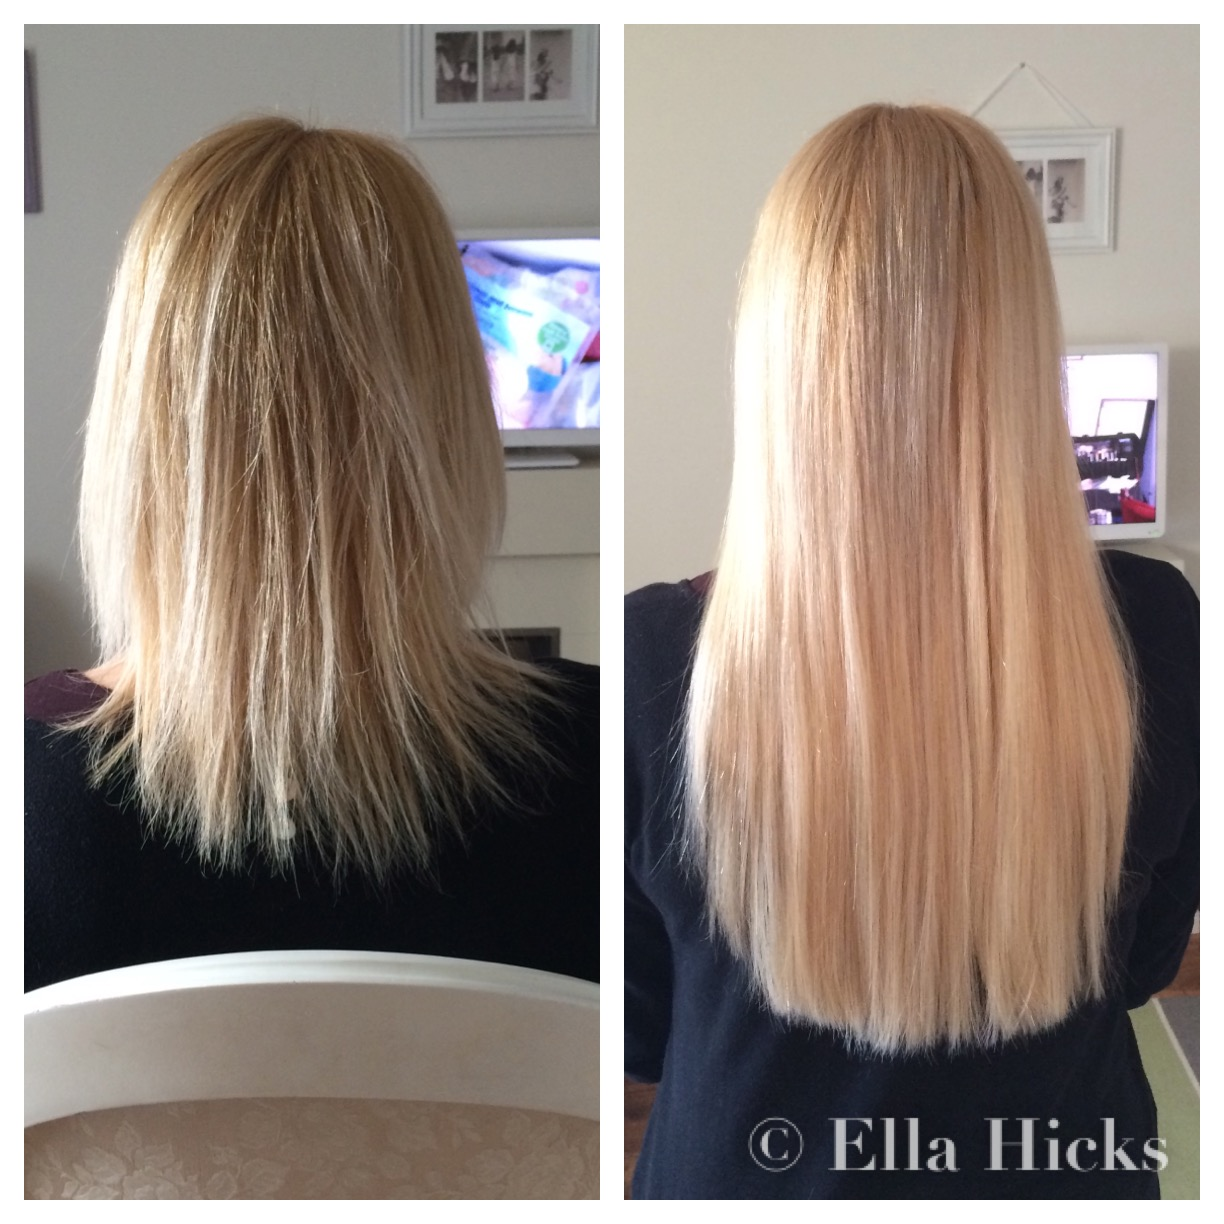 Ella hicks hair extensions portfolio warm blonde hair extensions pmusecretfo Image collections